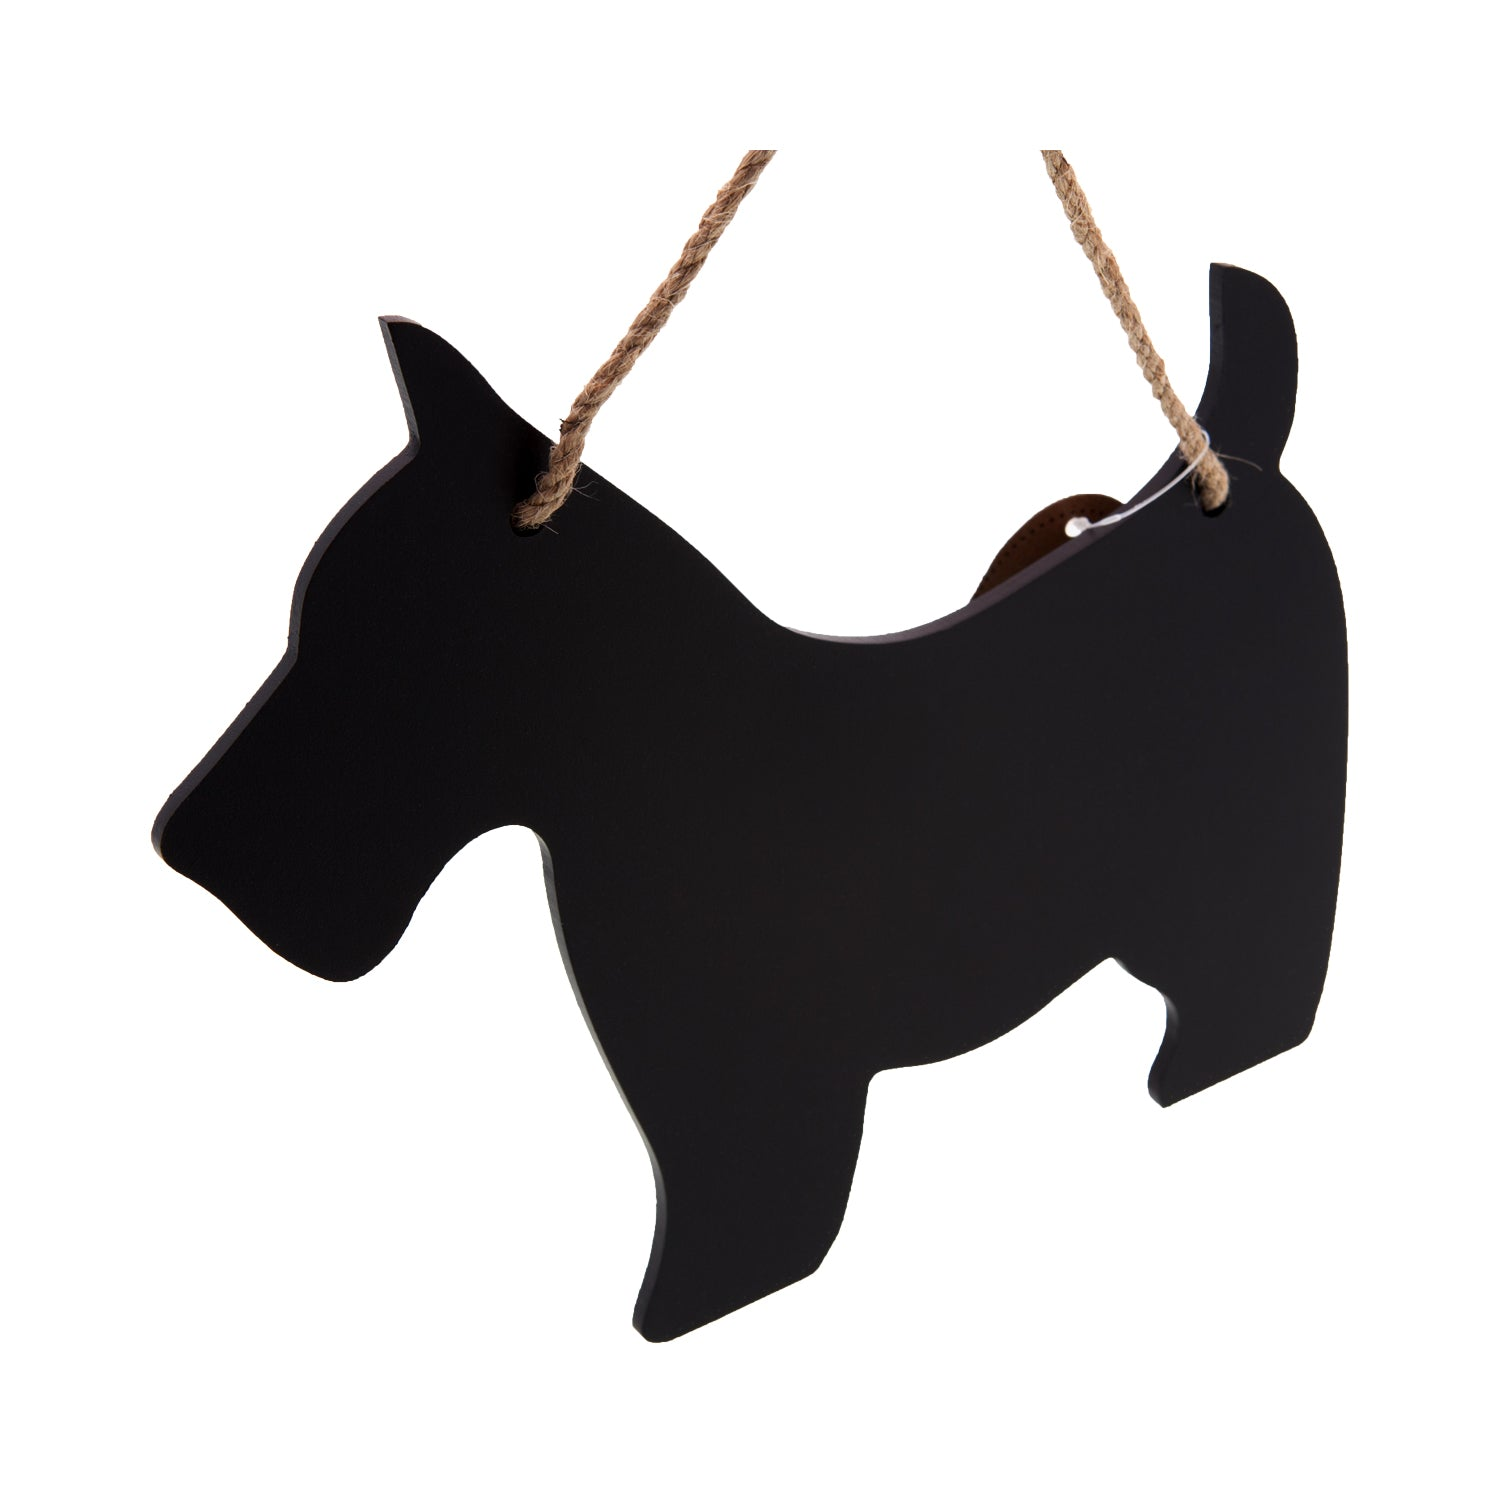 DogKrazy.Gifts –Scottie Dog Chalk Board or Blackboard of a Scottish Highland Terrier perfect in the Kitchen or Children's Bedroom available at Dog Krazy Gifts